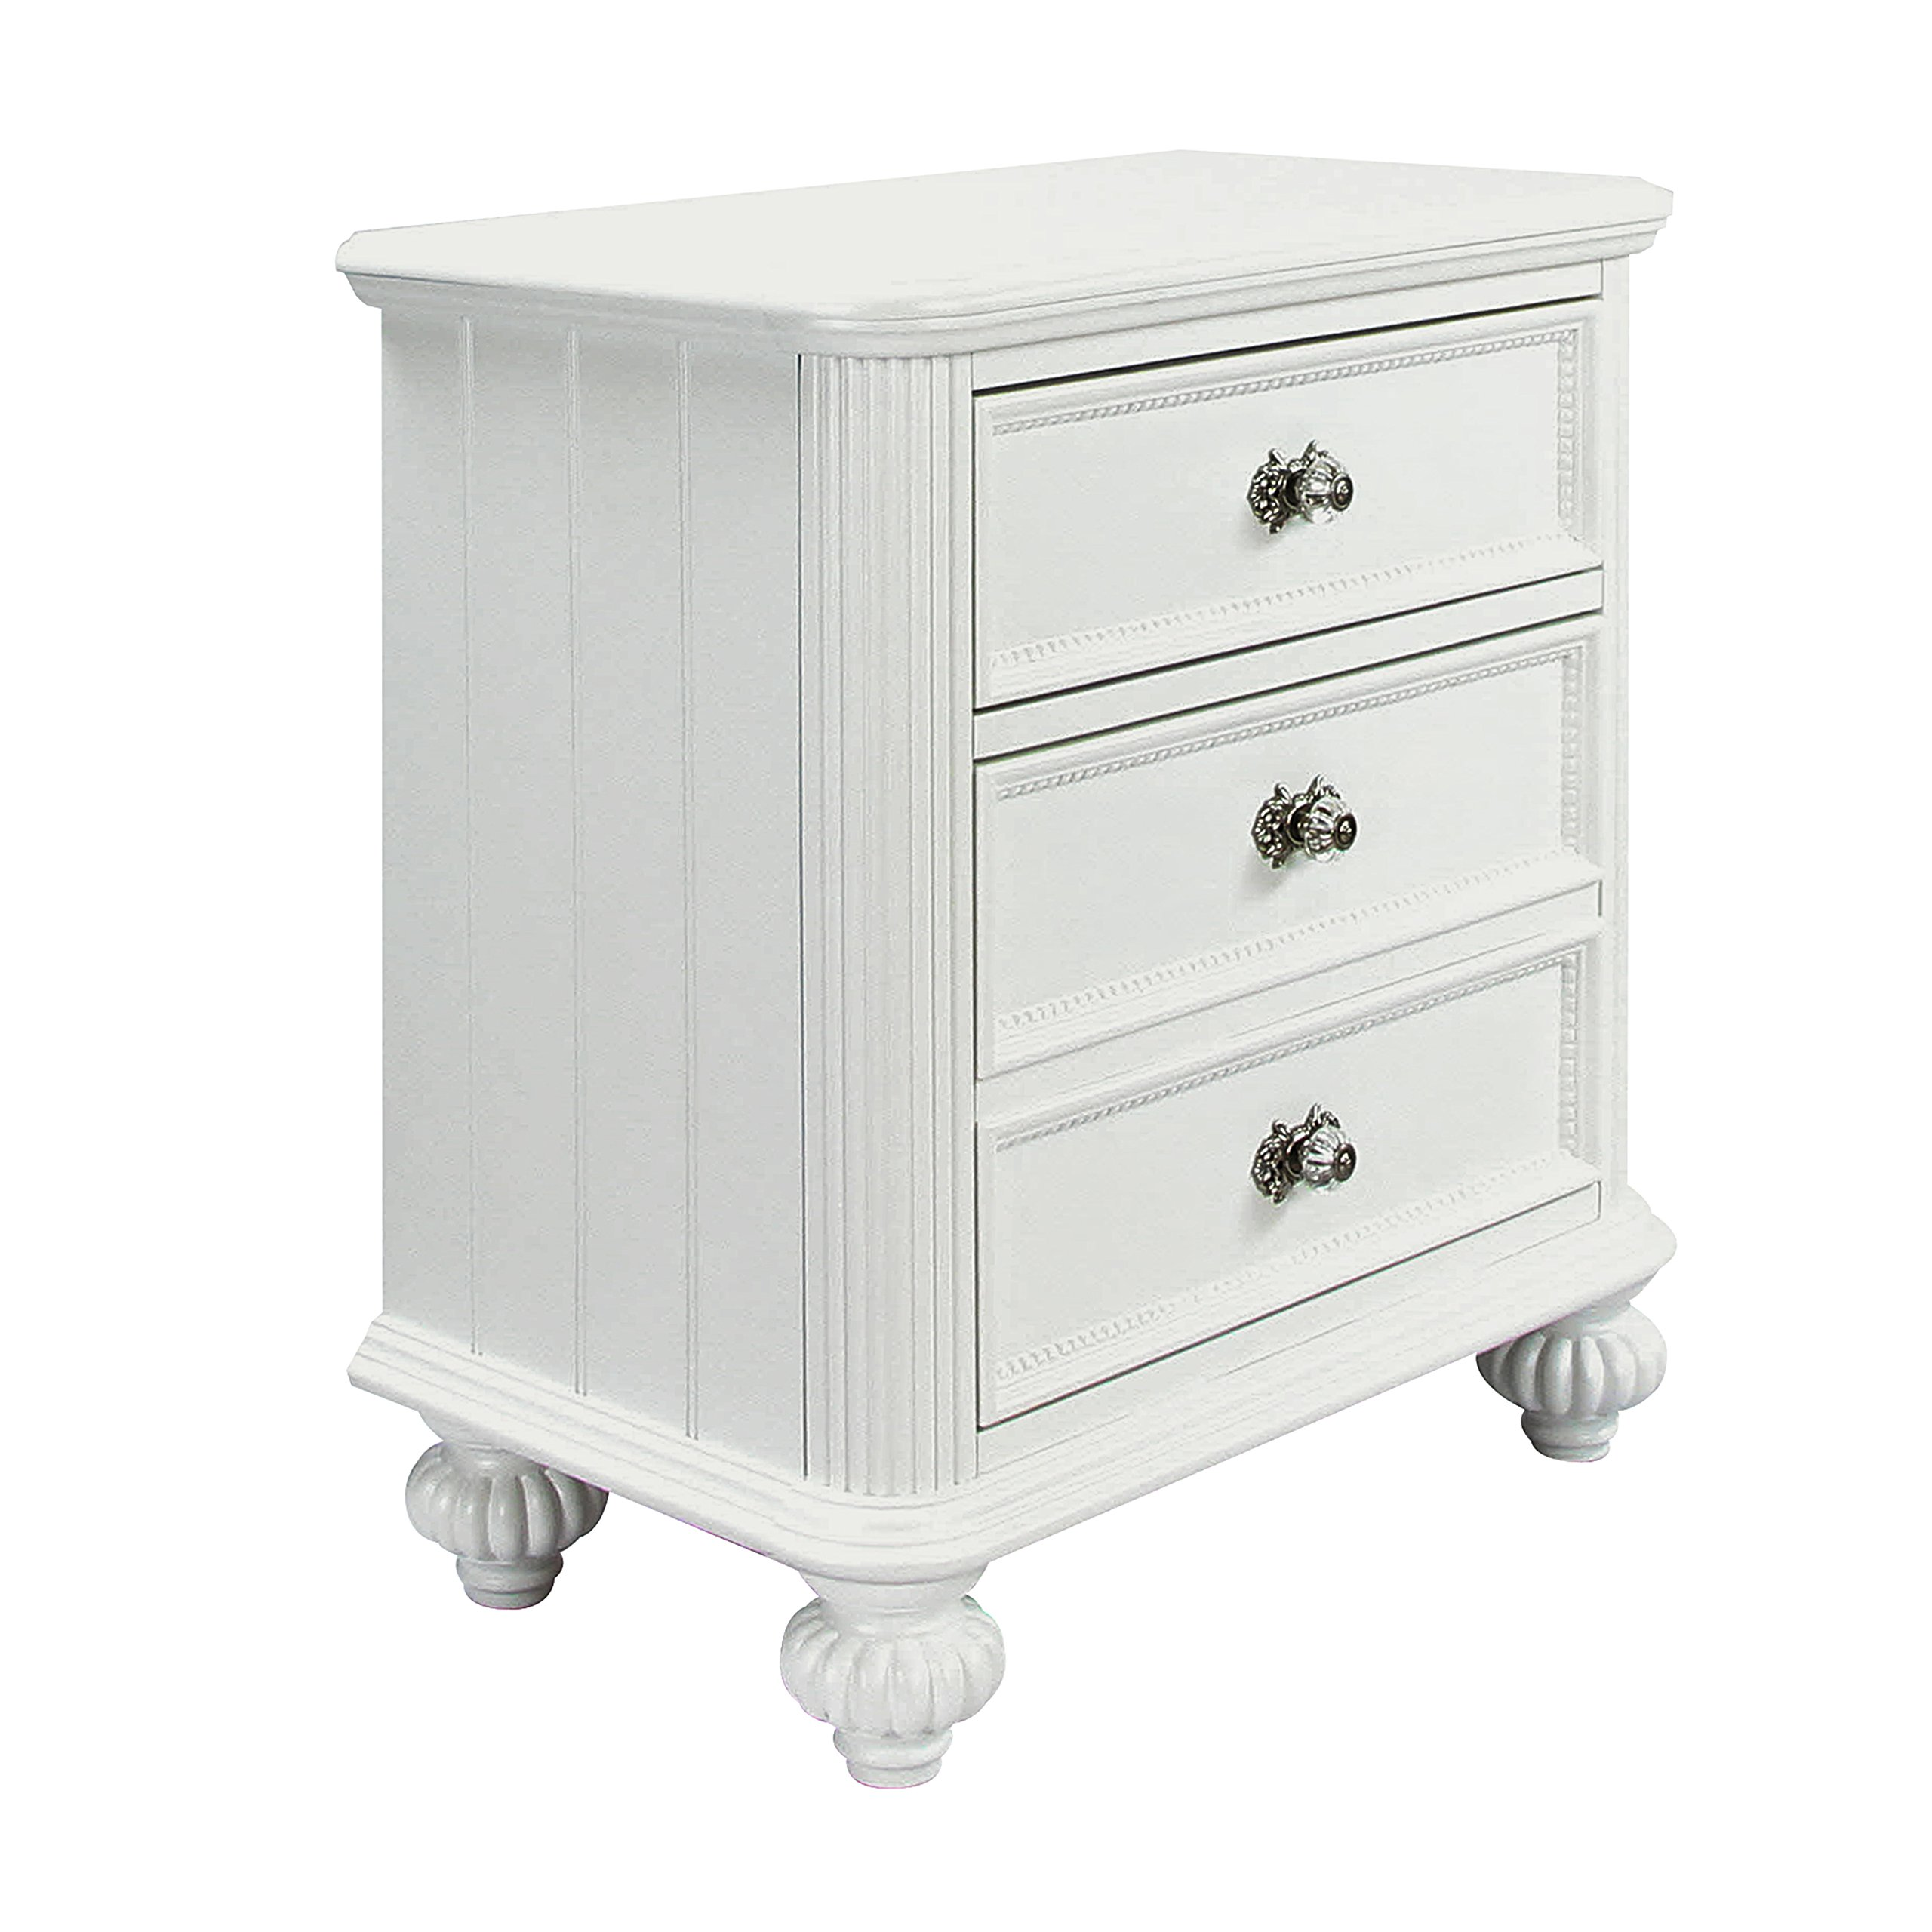 Acme 30009 Athena Nightstand, White by acme